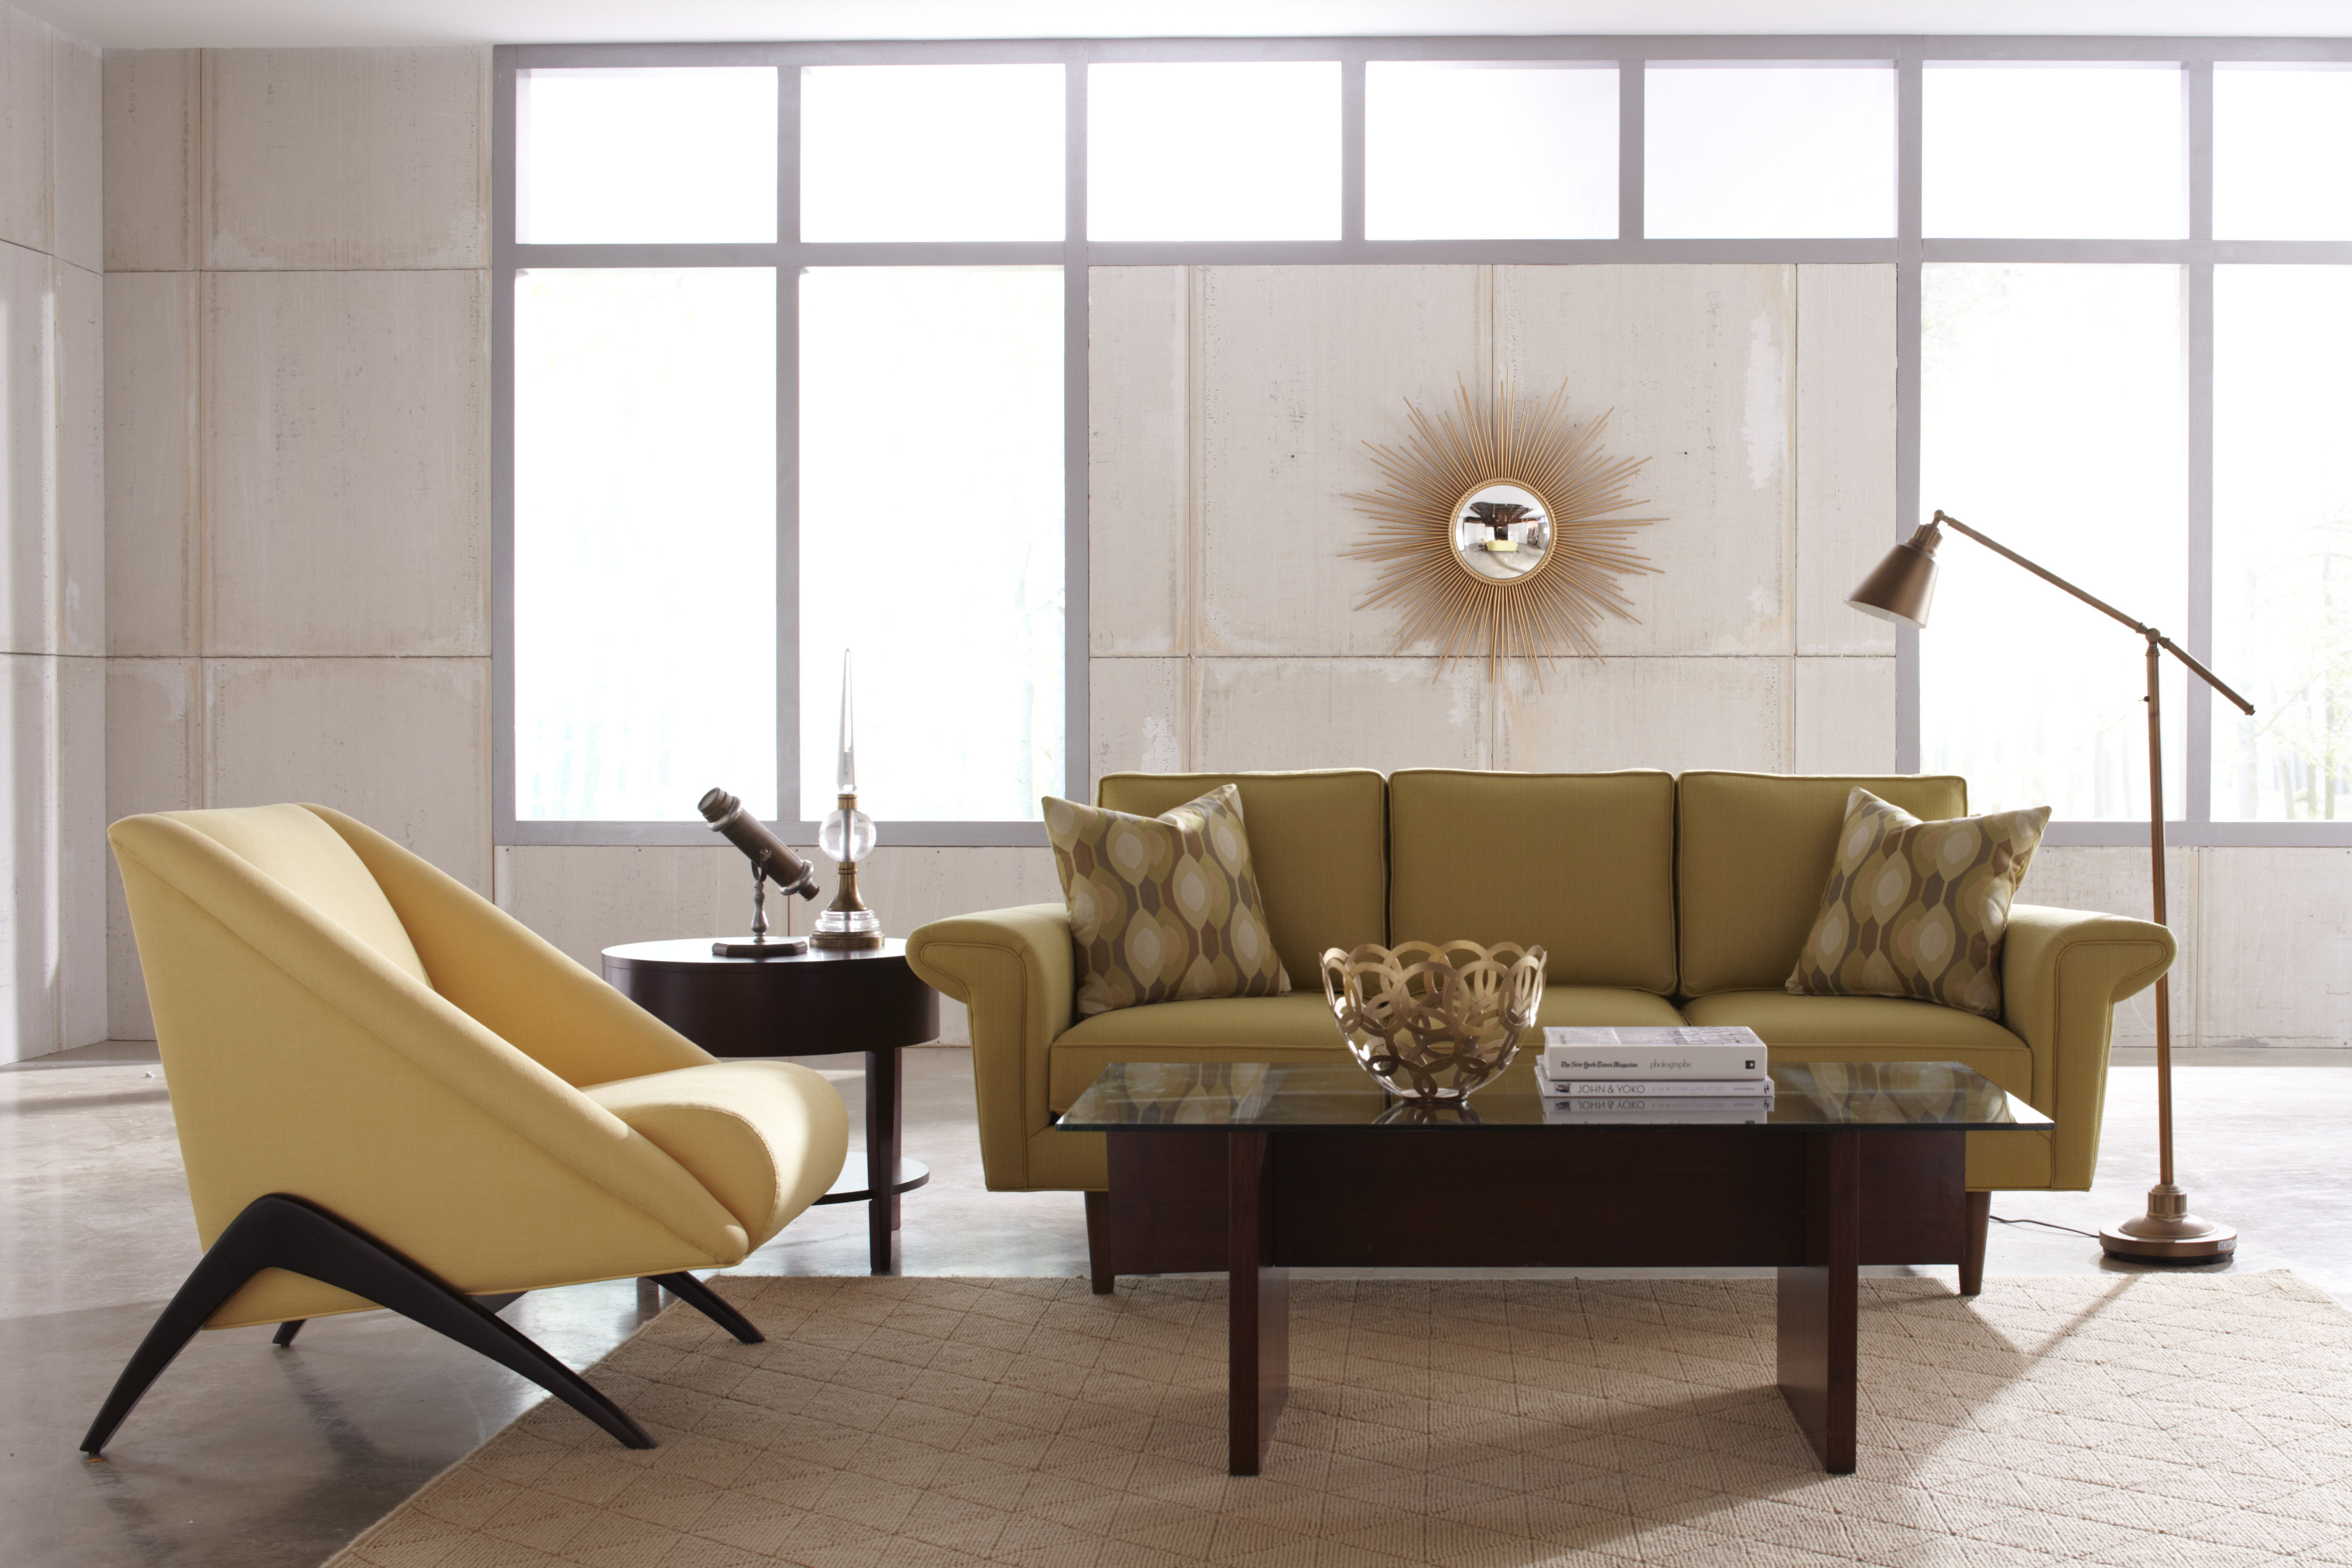 Contemporary or Modern Whats the difference in interior design  Christine Ringenbach  Your